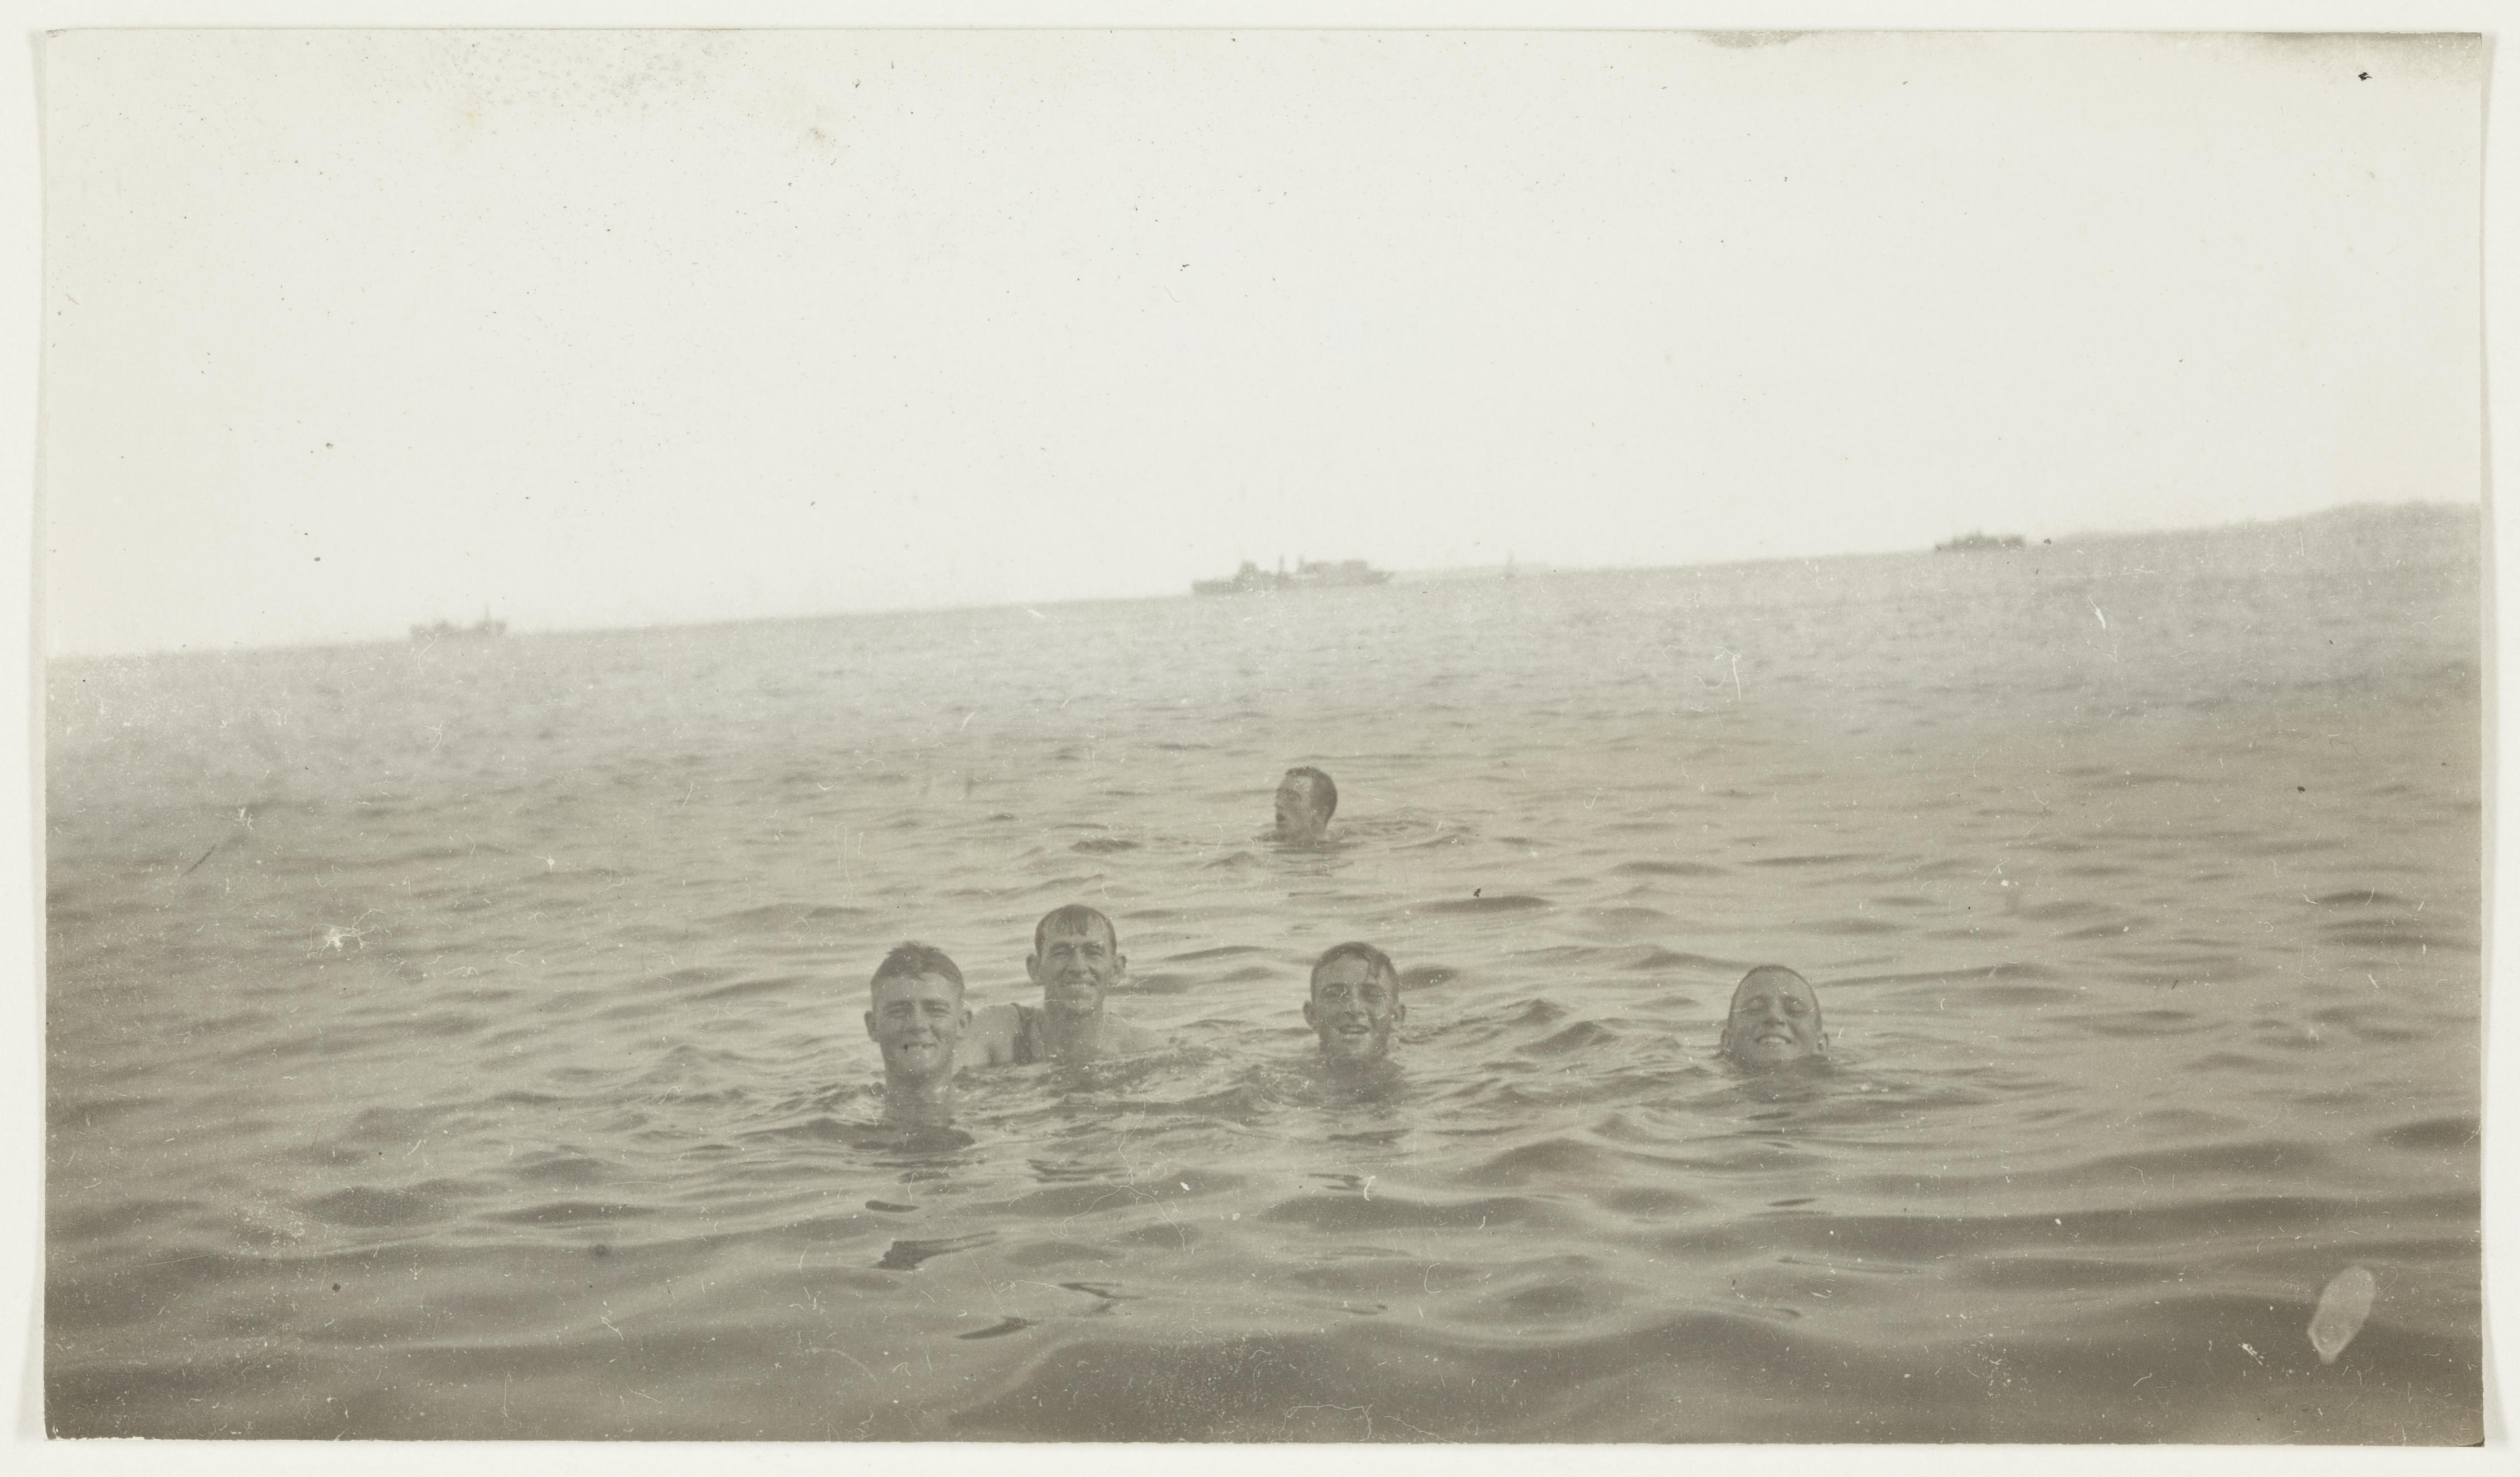 Swimming at El Arish  by J.F. Smith of the 7th Light Horse in Egypt and Palestine, c. 1914-1918